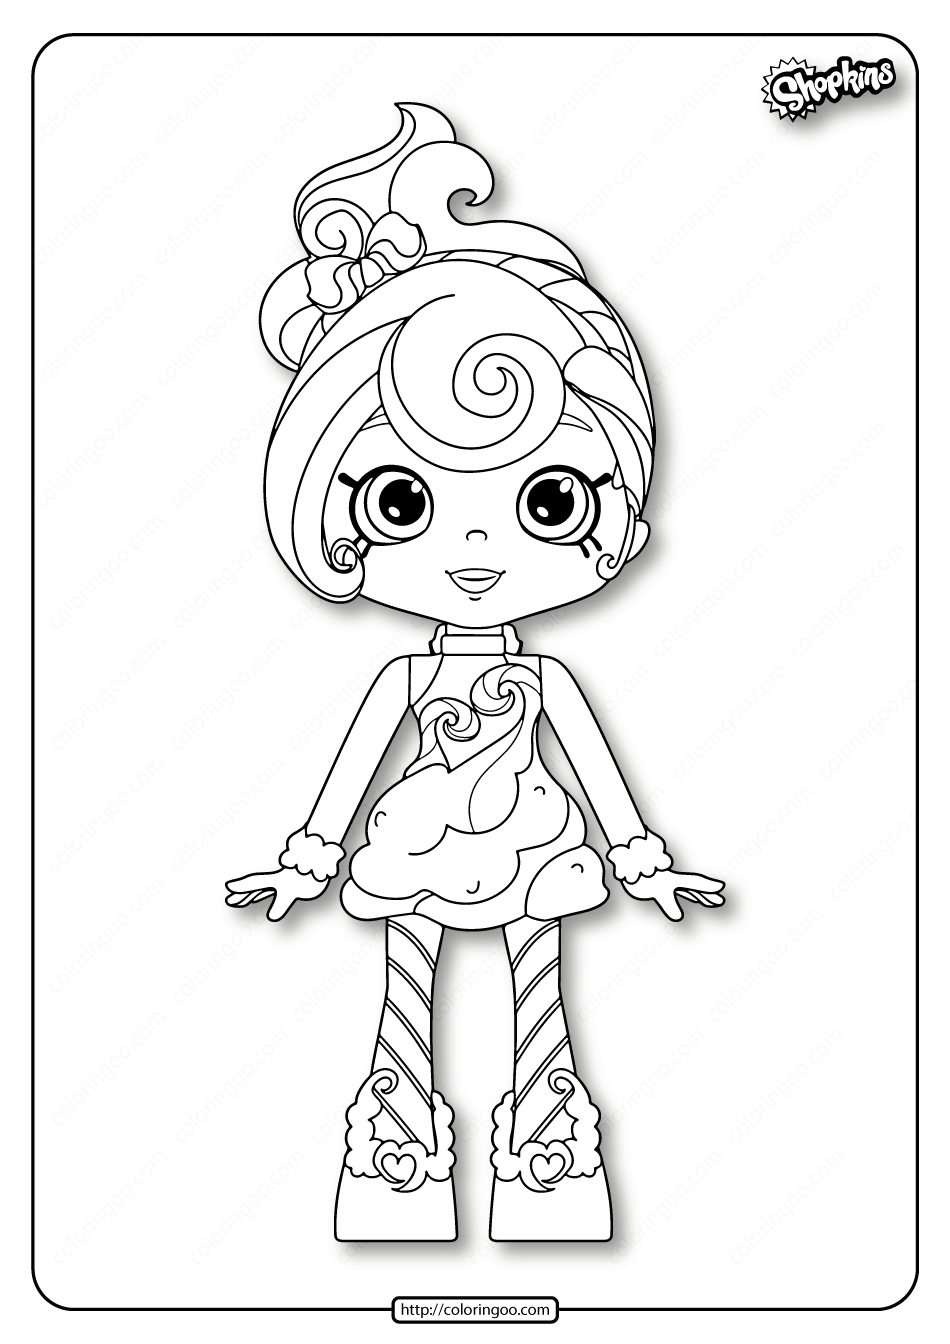 Printable Shopkins Candy Sweets Coloring Pages